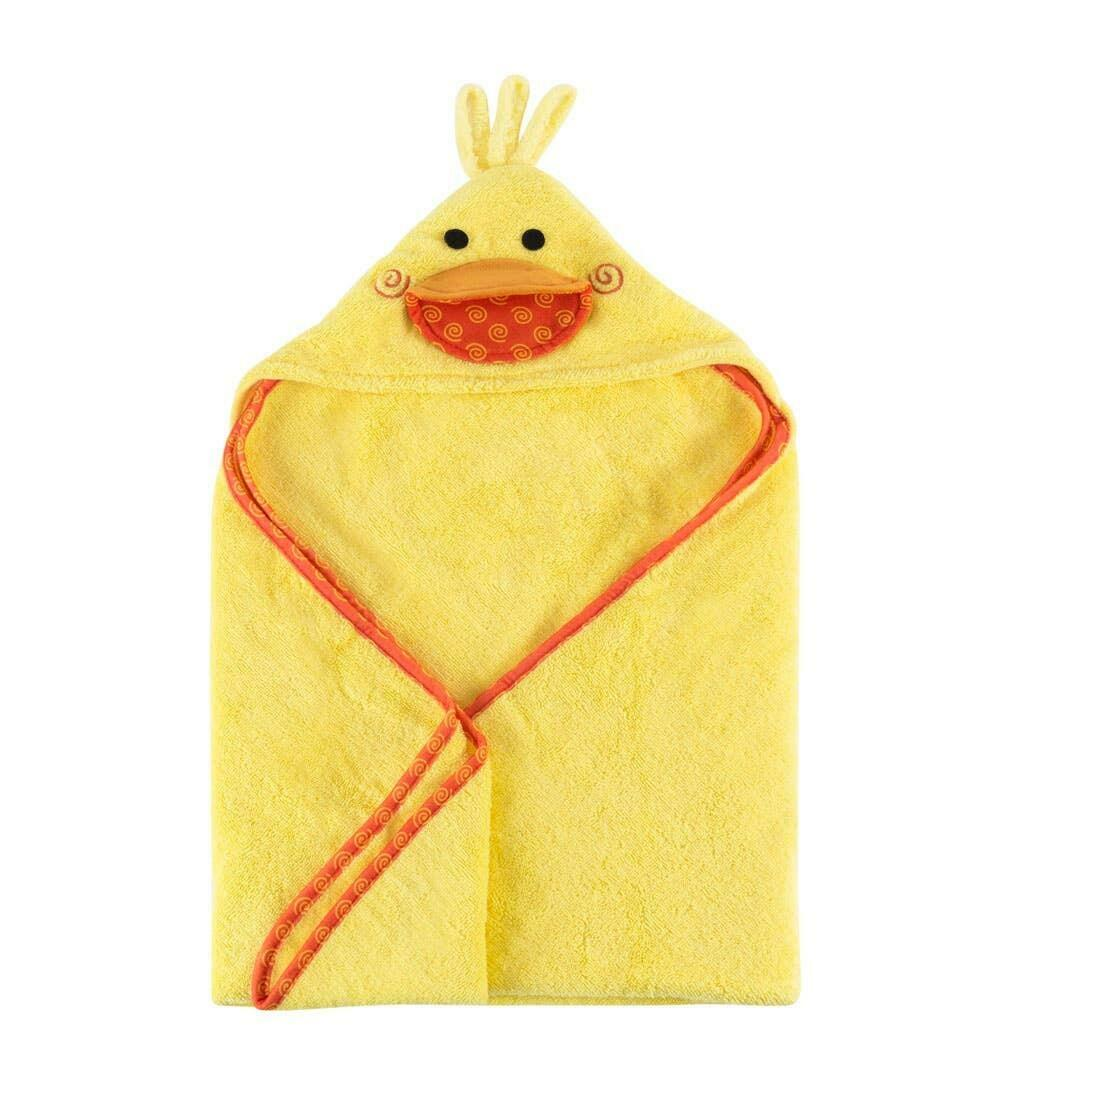 Puddles the Duck Baby Towel | Trada Marketplace